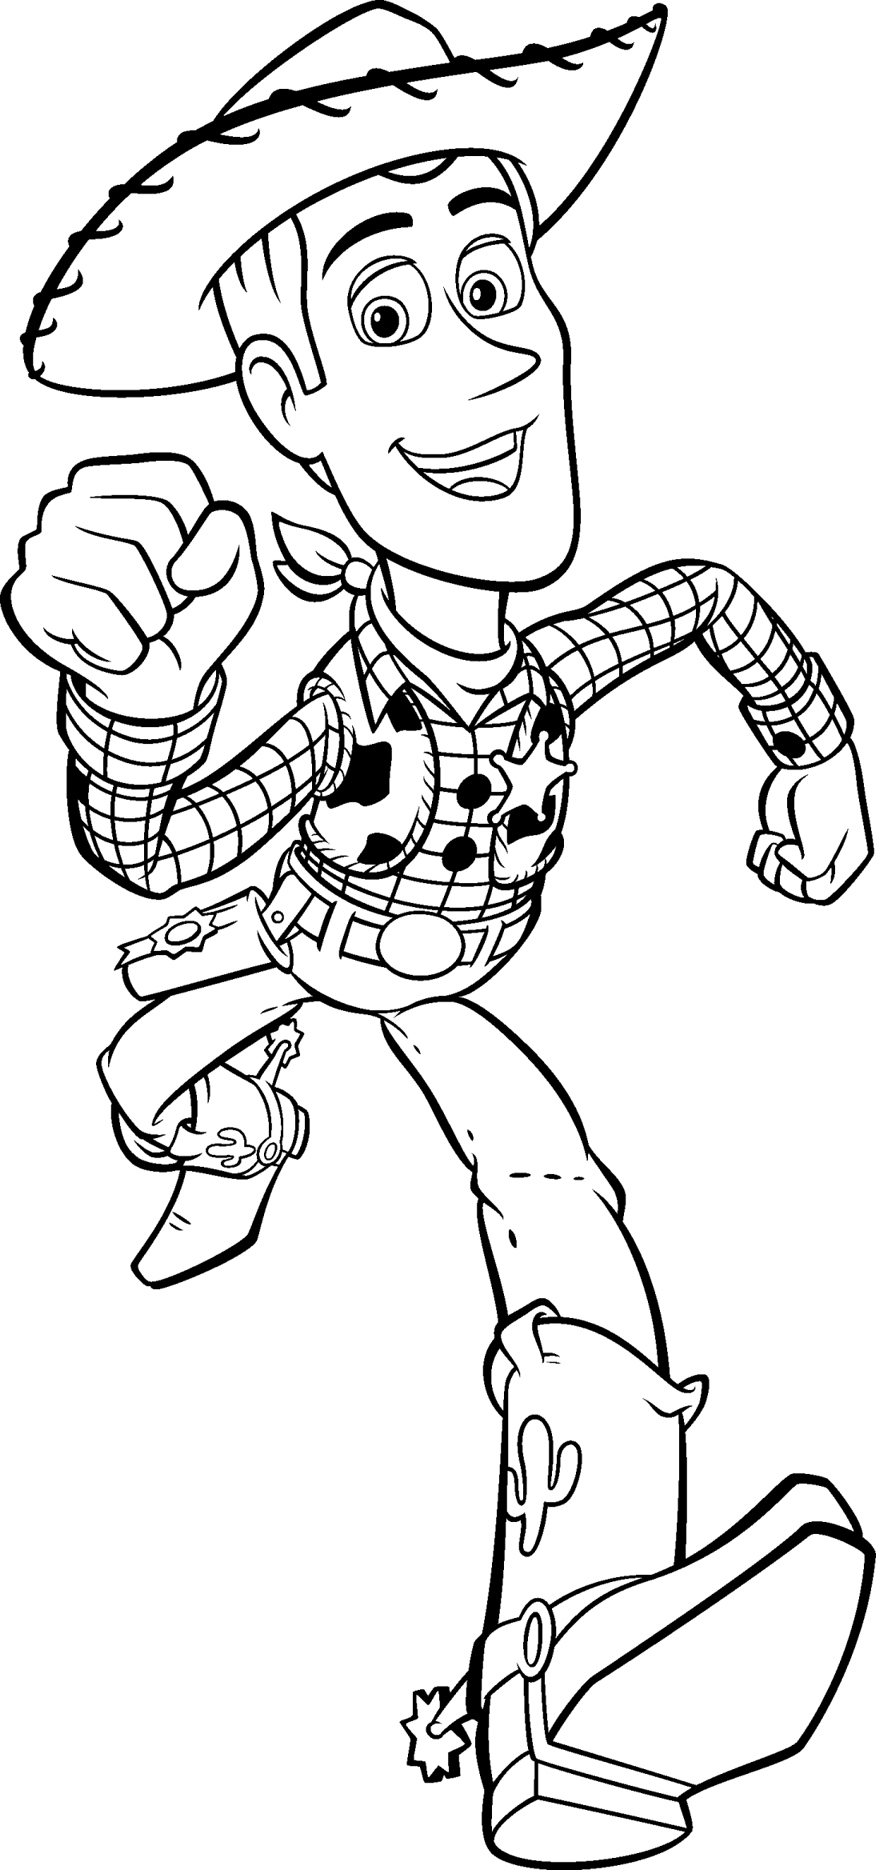 kids coloring pages printables - photo#40